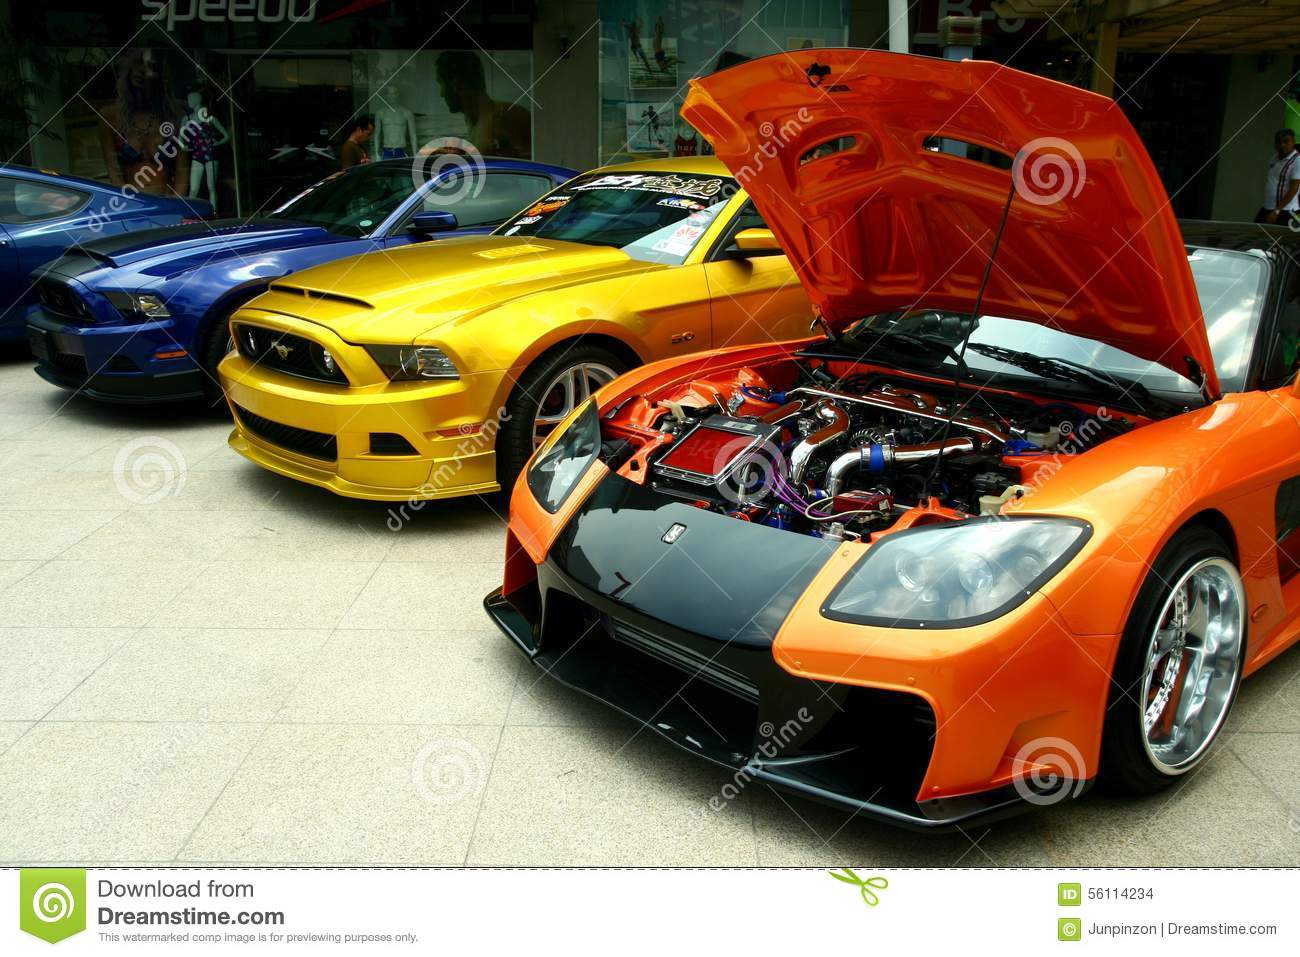 Expensive And Customized Luxury And Race Cars Editorial